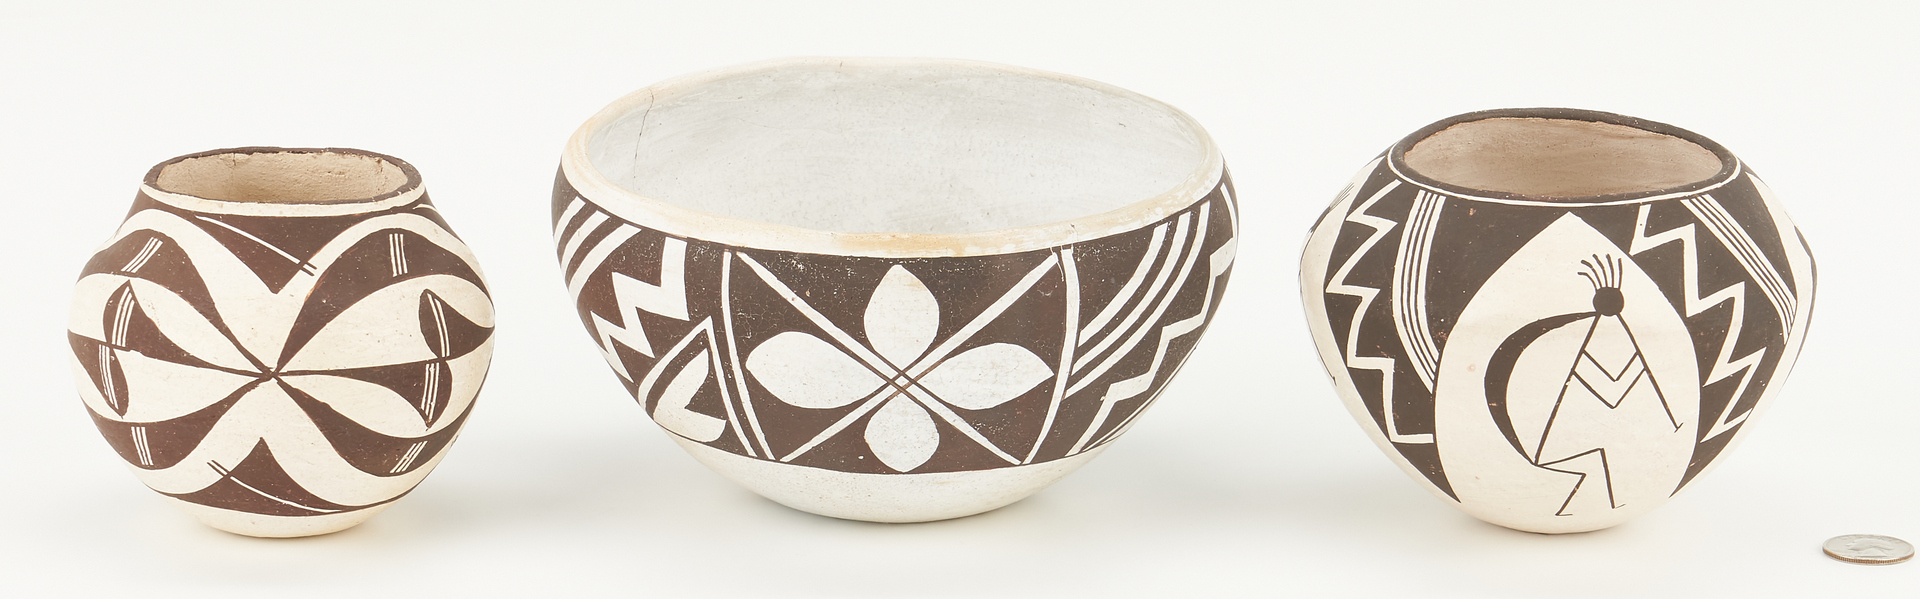 Lot 1105: 3 Acoma Pueblo, NM Pottery Items, incl. Lucy M. Lewis